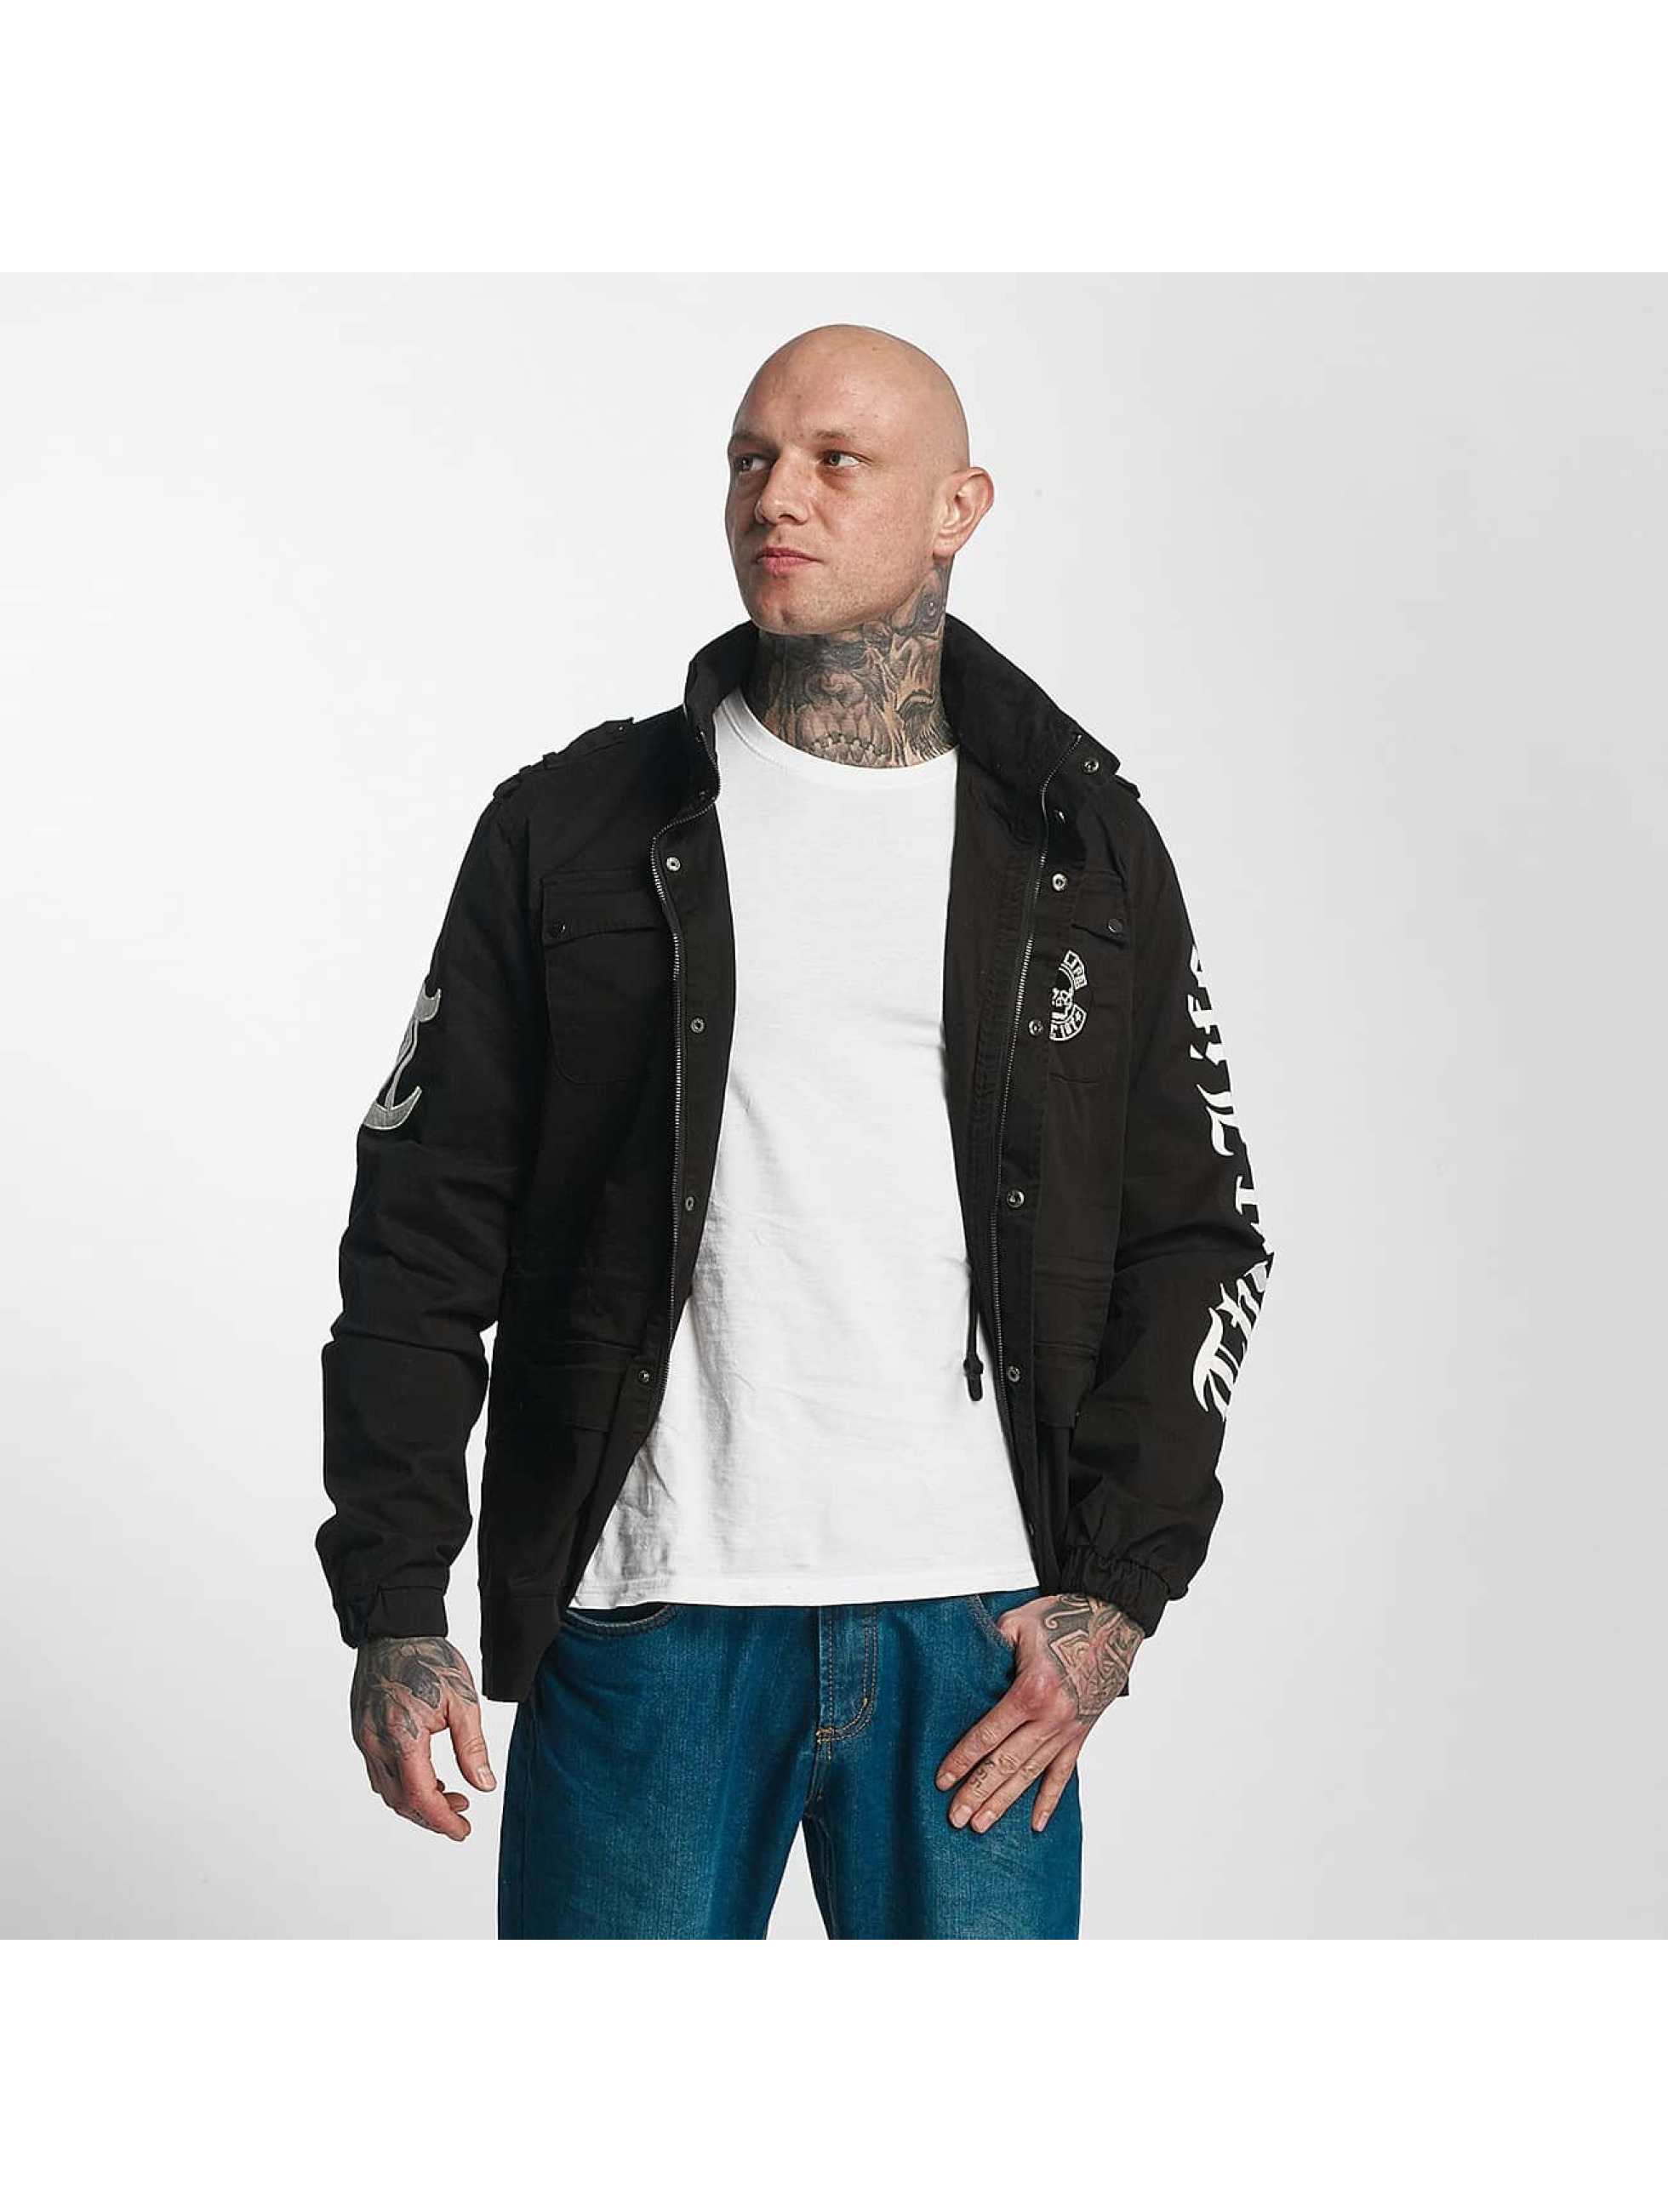 Thug Life / Lightweight Jacket 187 in black M